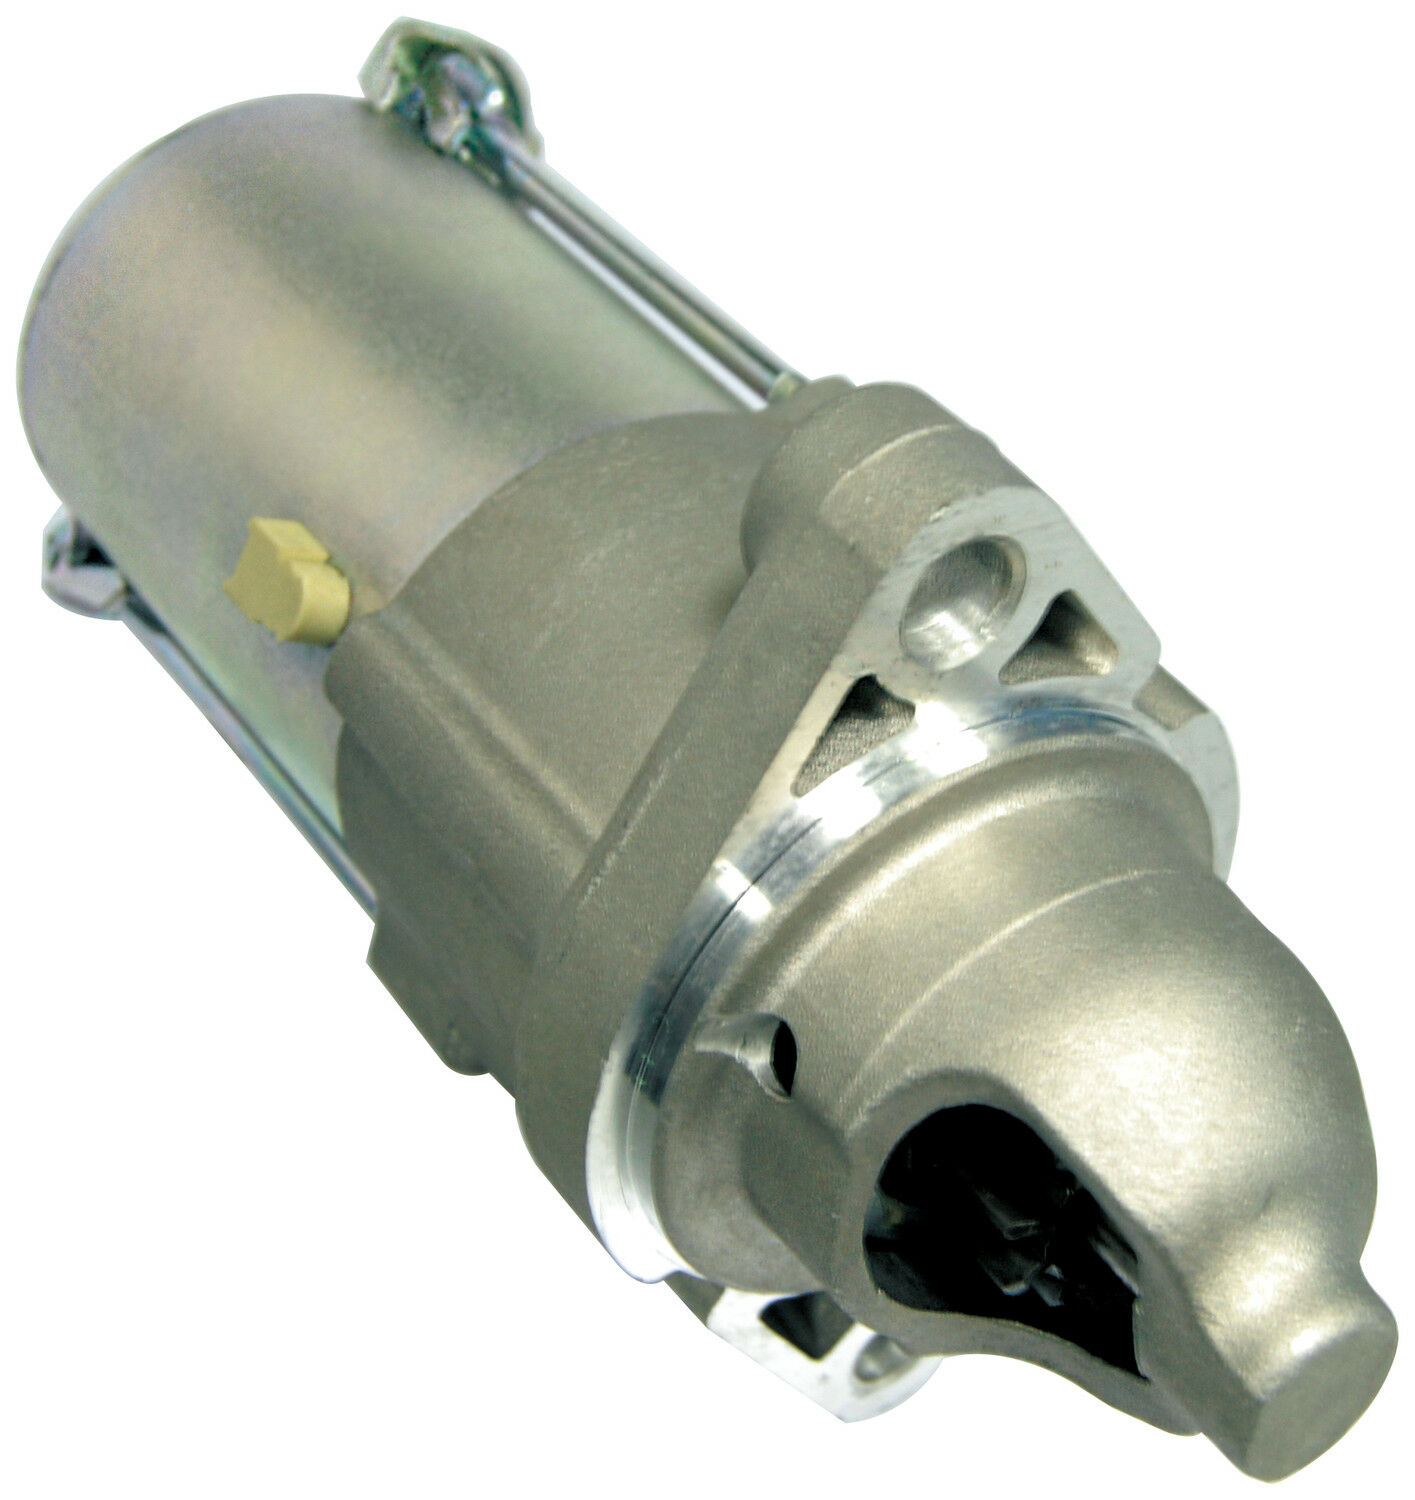 100% NEW STARTER MOTOR FOR ACURA TSX 2.4L 2006-08 ONE YEAR